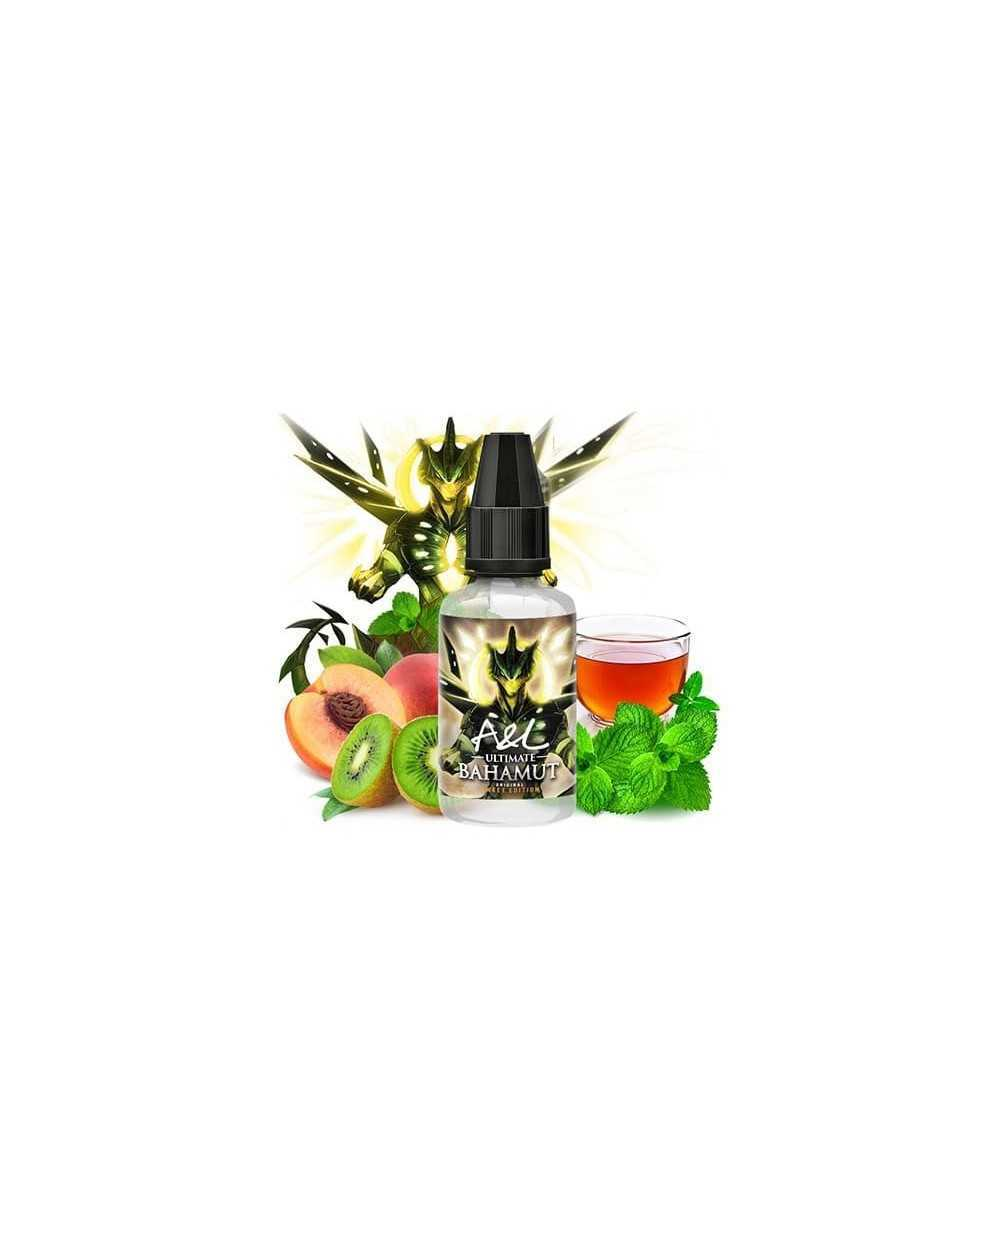 Concentrated aroma Bahamut 30ml - Ultimate by A&L-1